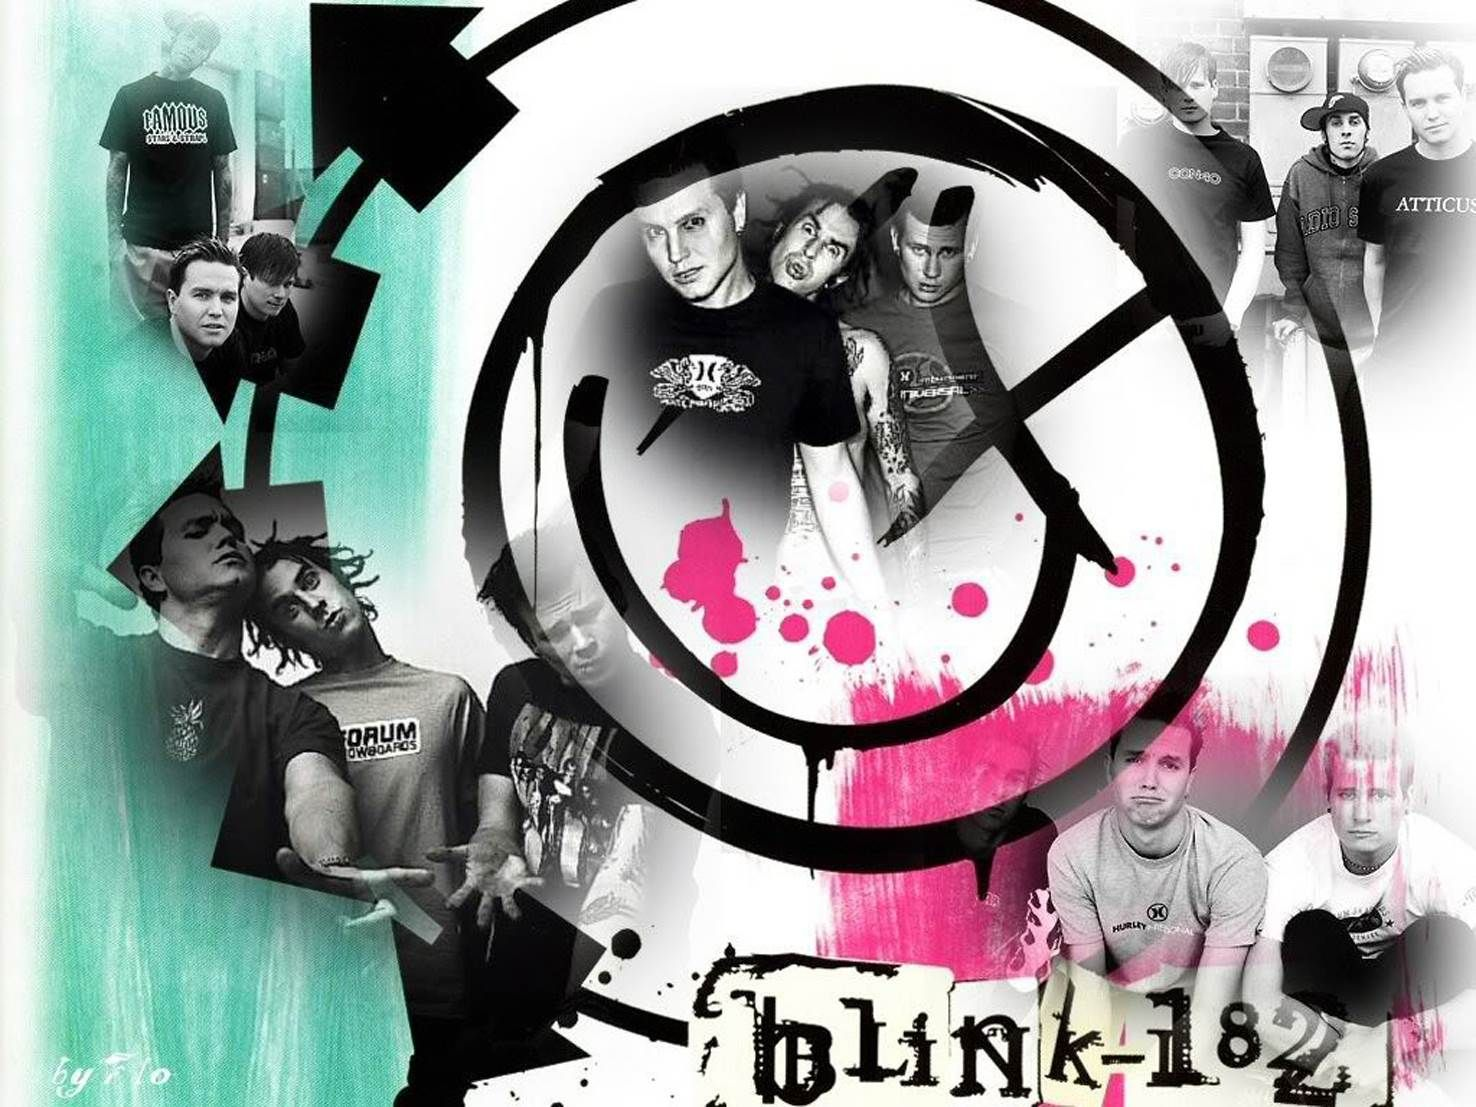 Download Free Blink Backgrounds Hd Wallpapers Backgrounds 1192 670 Blink 182 Desktop Wallpapers Adorab Background Hd Wallpaper Desktop Wallpaper Blink 182